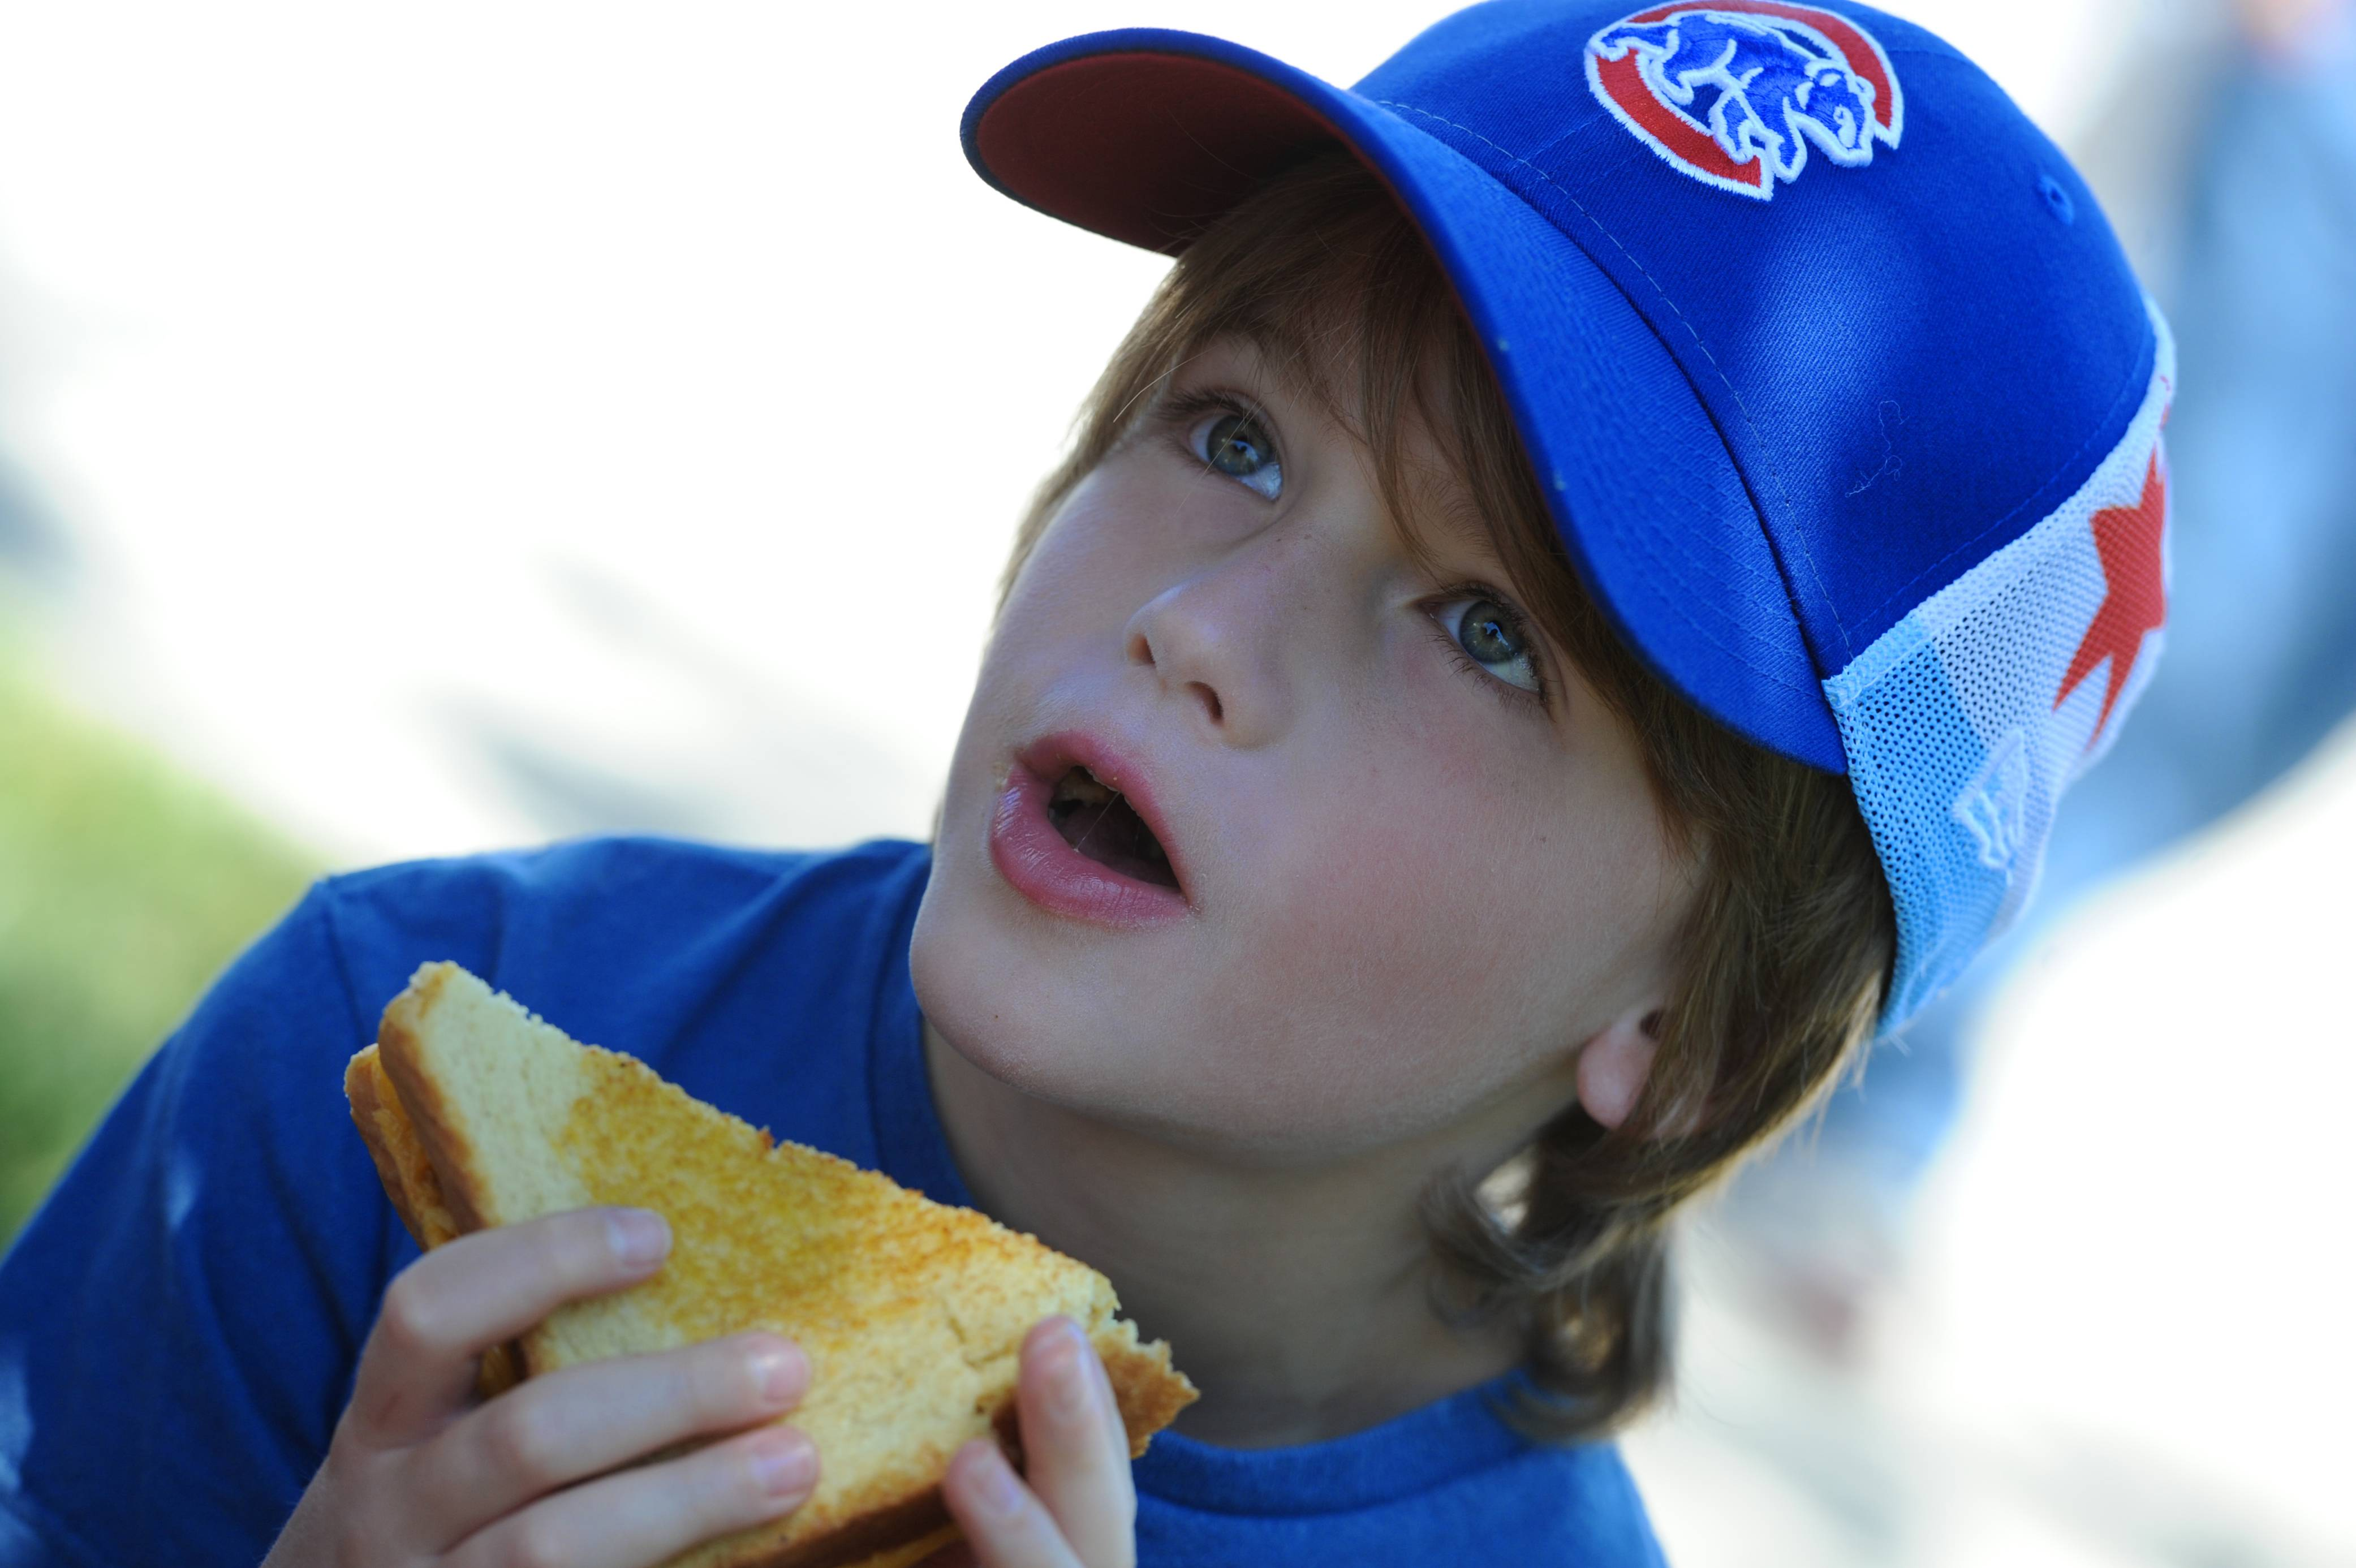 Nolan Diederich, 8, of Arlington Heights tries The Mac -- macaroni and cheese on Texas toast -- at the 5th annual Food Truck Festival Saturday at Arlington Park.